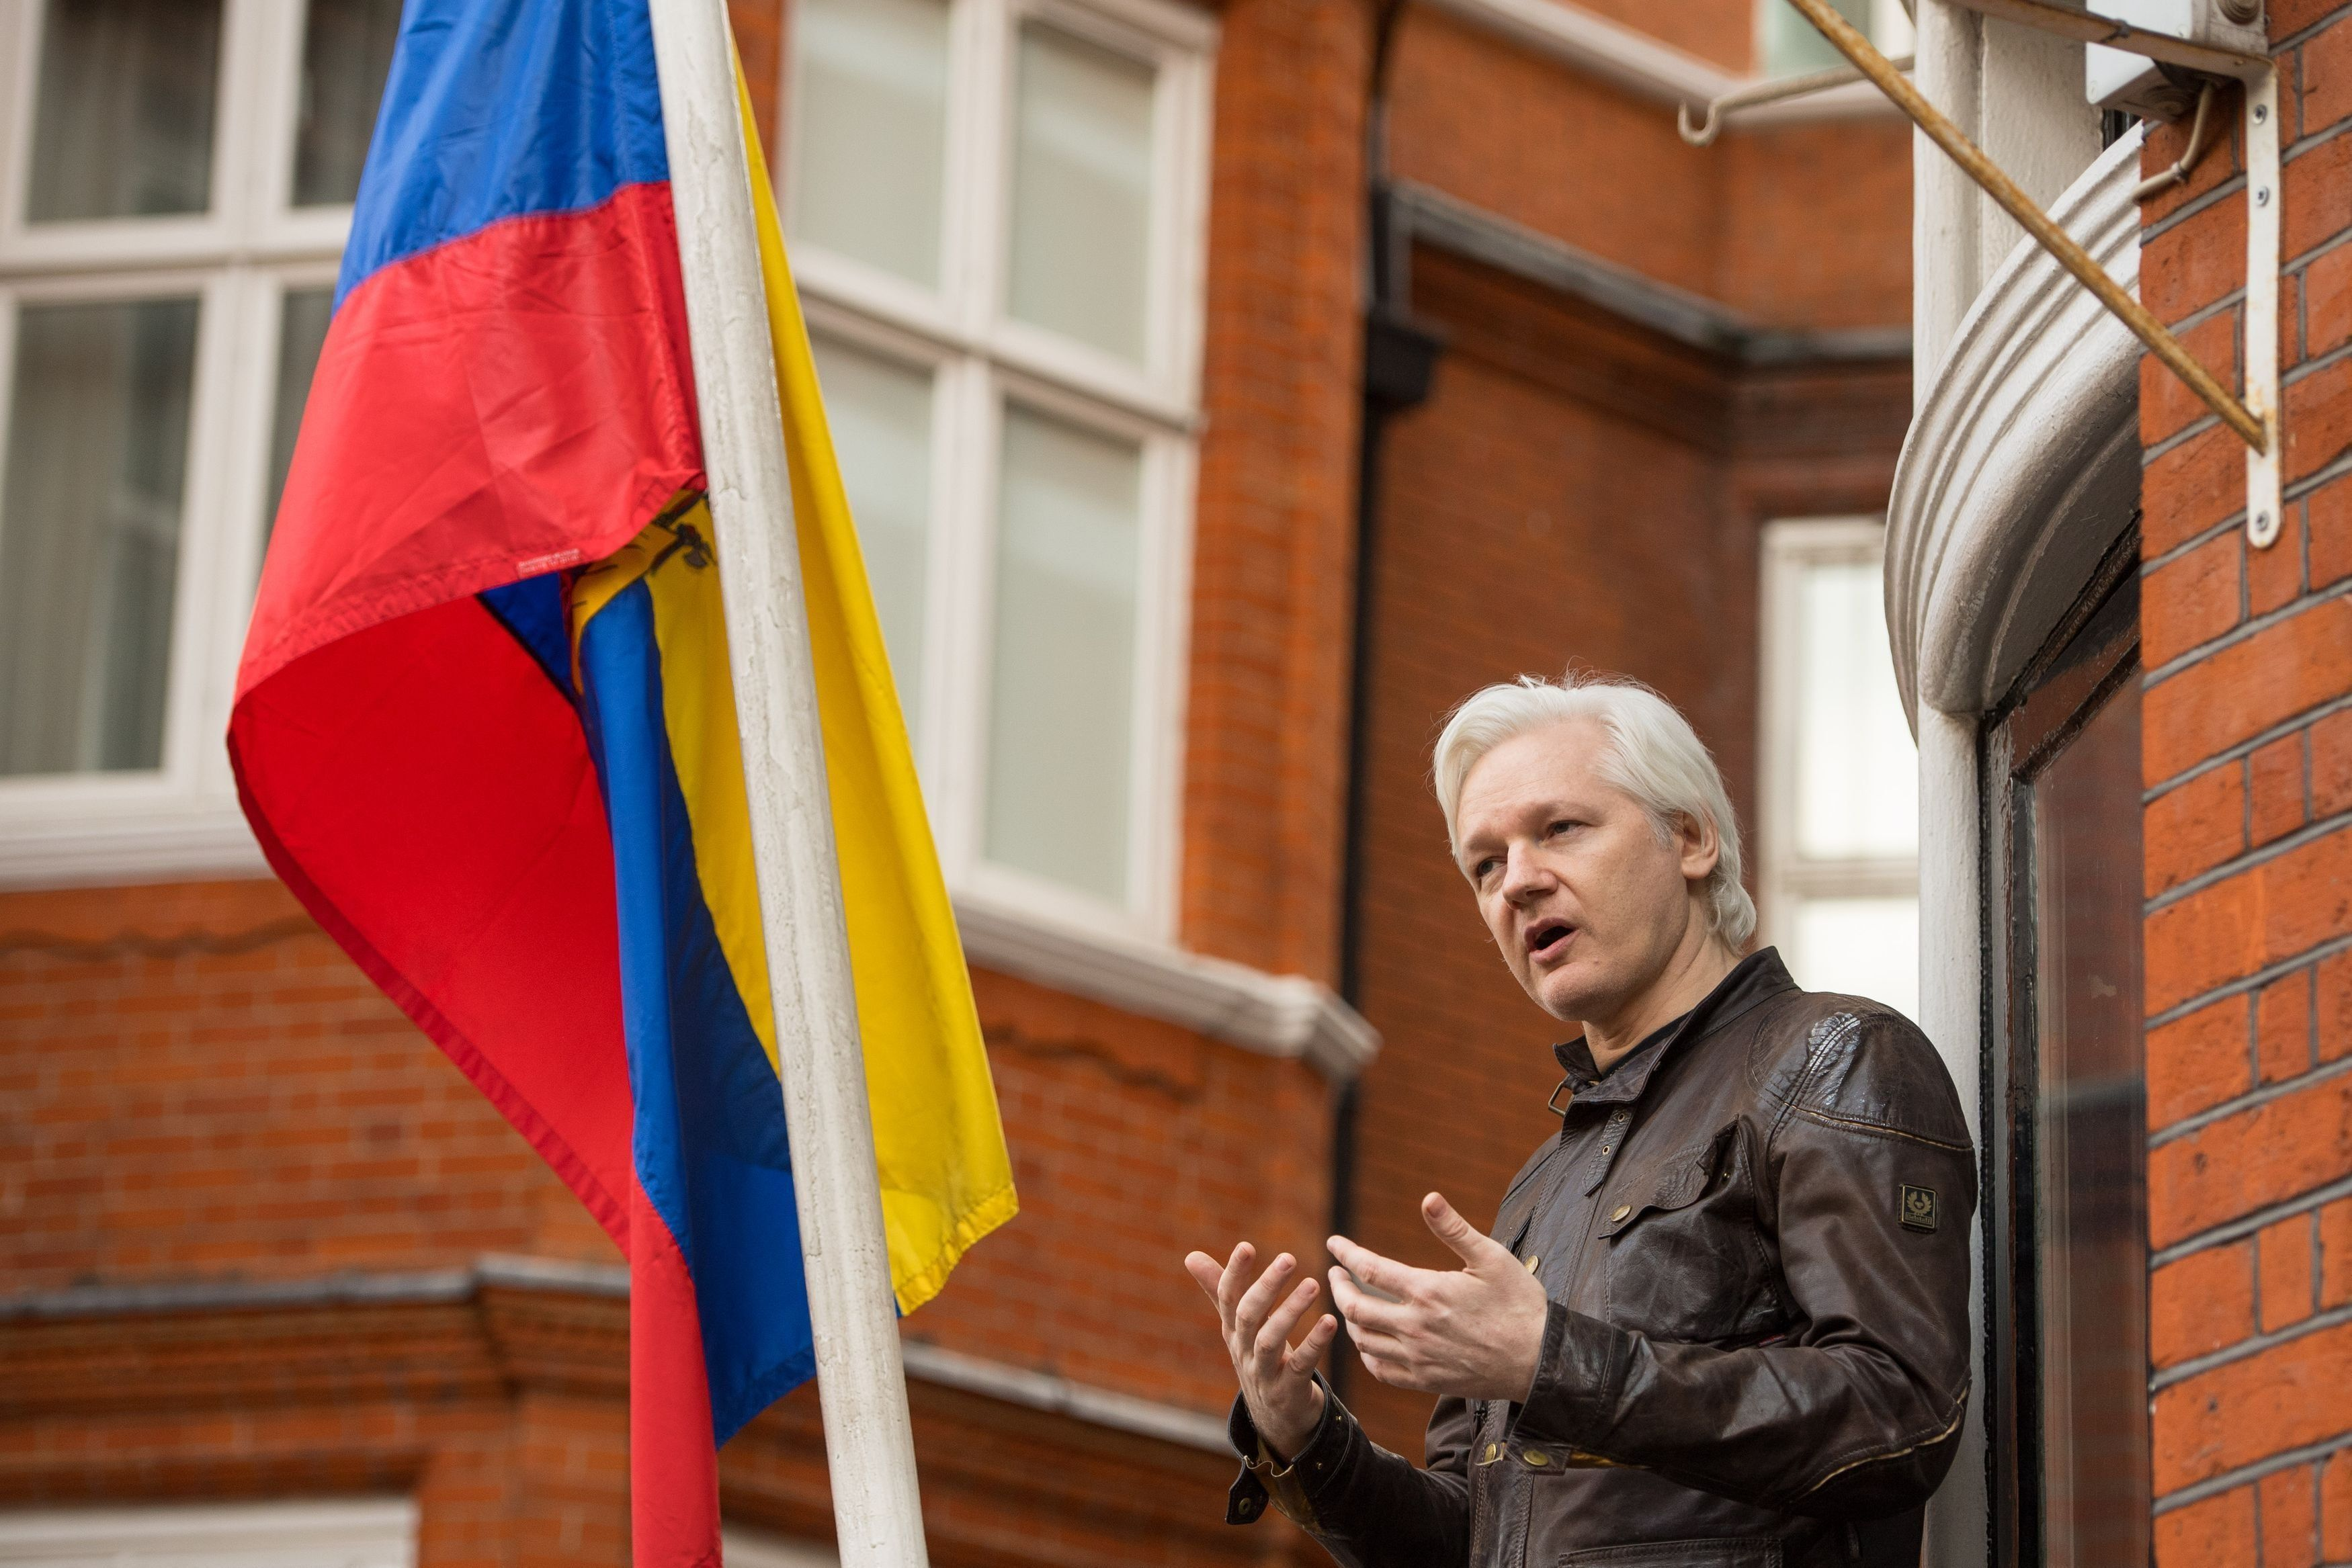 'Suspicious Package' Reported Outside Ecuadorian Embassy, Home Of Julian